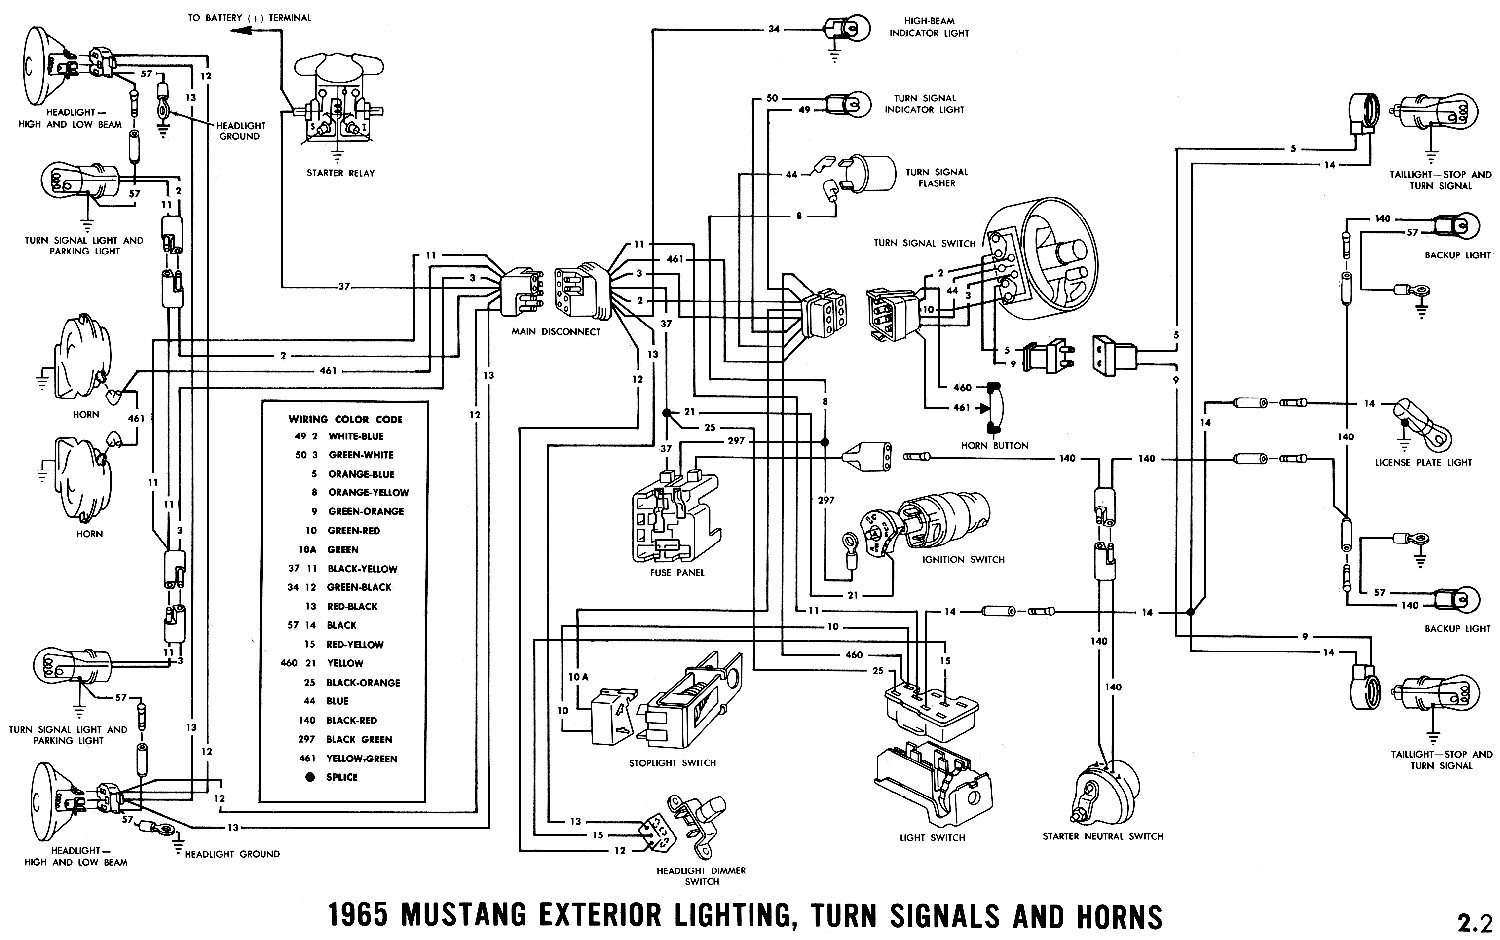 2006 Ford Mustang Fuse Box Wiring Harness Circuit Diagram Schema E 450 65 Headlight Electrical Diagrams Schematics 2003